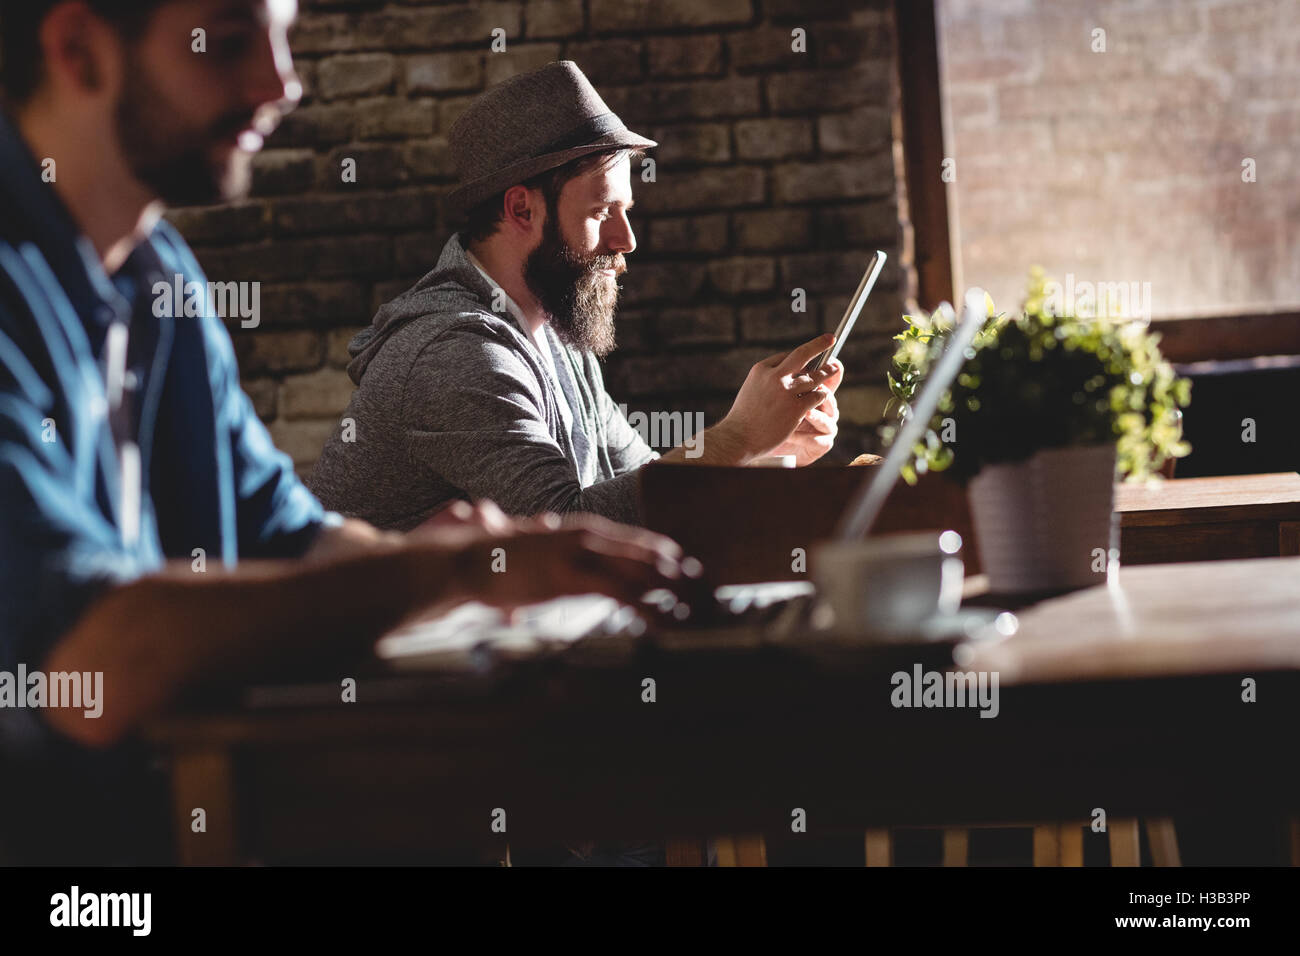 Side view of customers using technologies at cafe - Stock Image